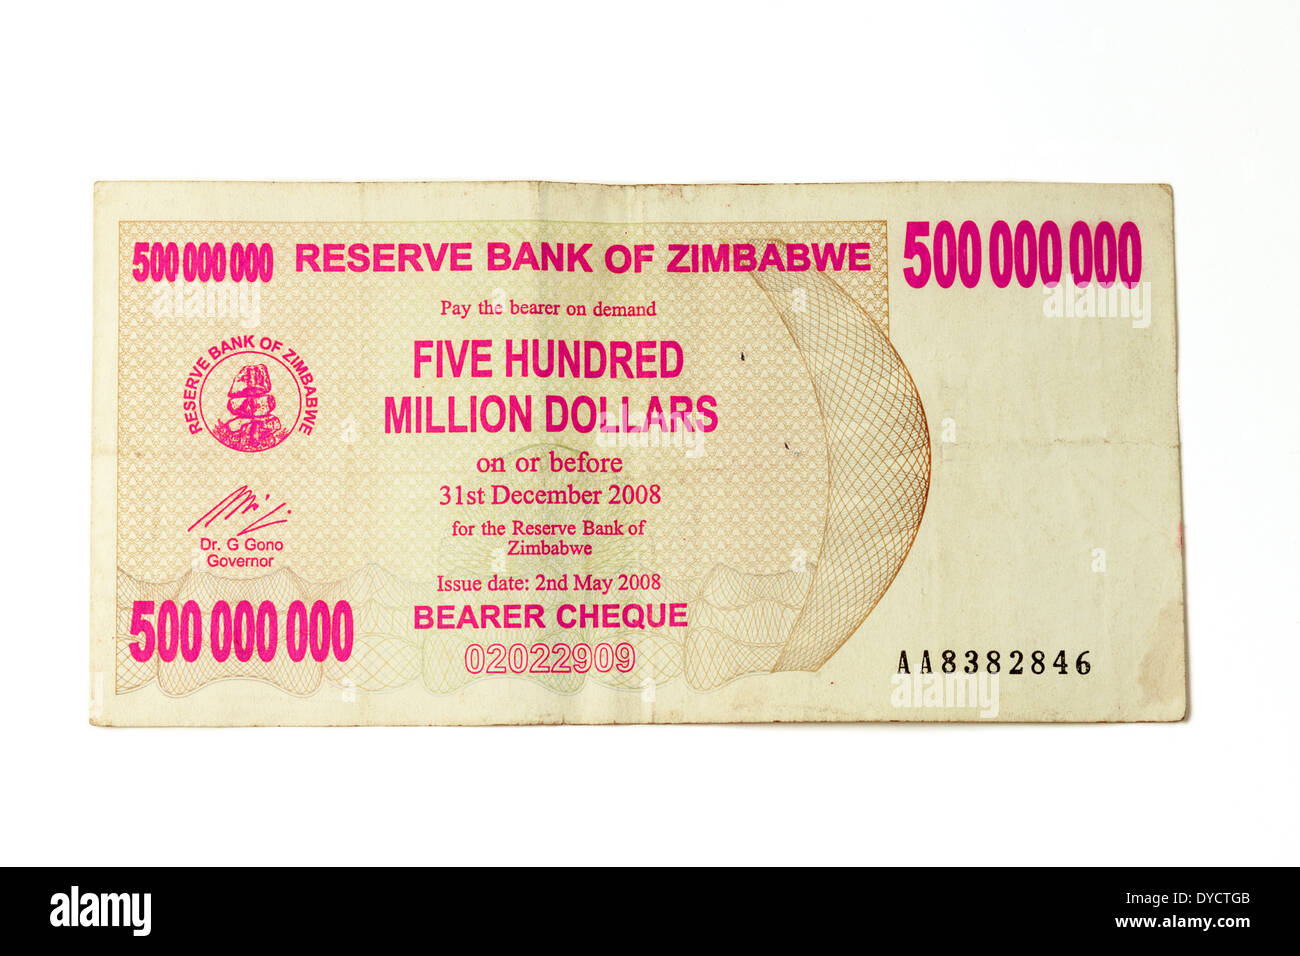 2008 Zimbabwe bank note for 500,000,000 dollars - concept of rampant inflation and poor economy - Stock Image